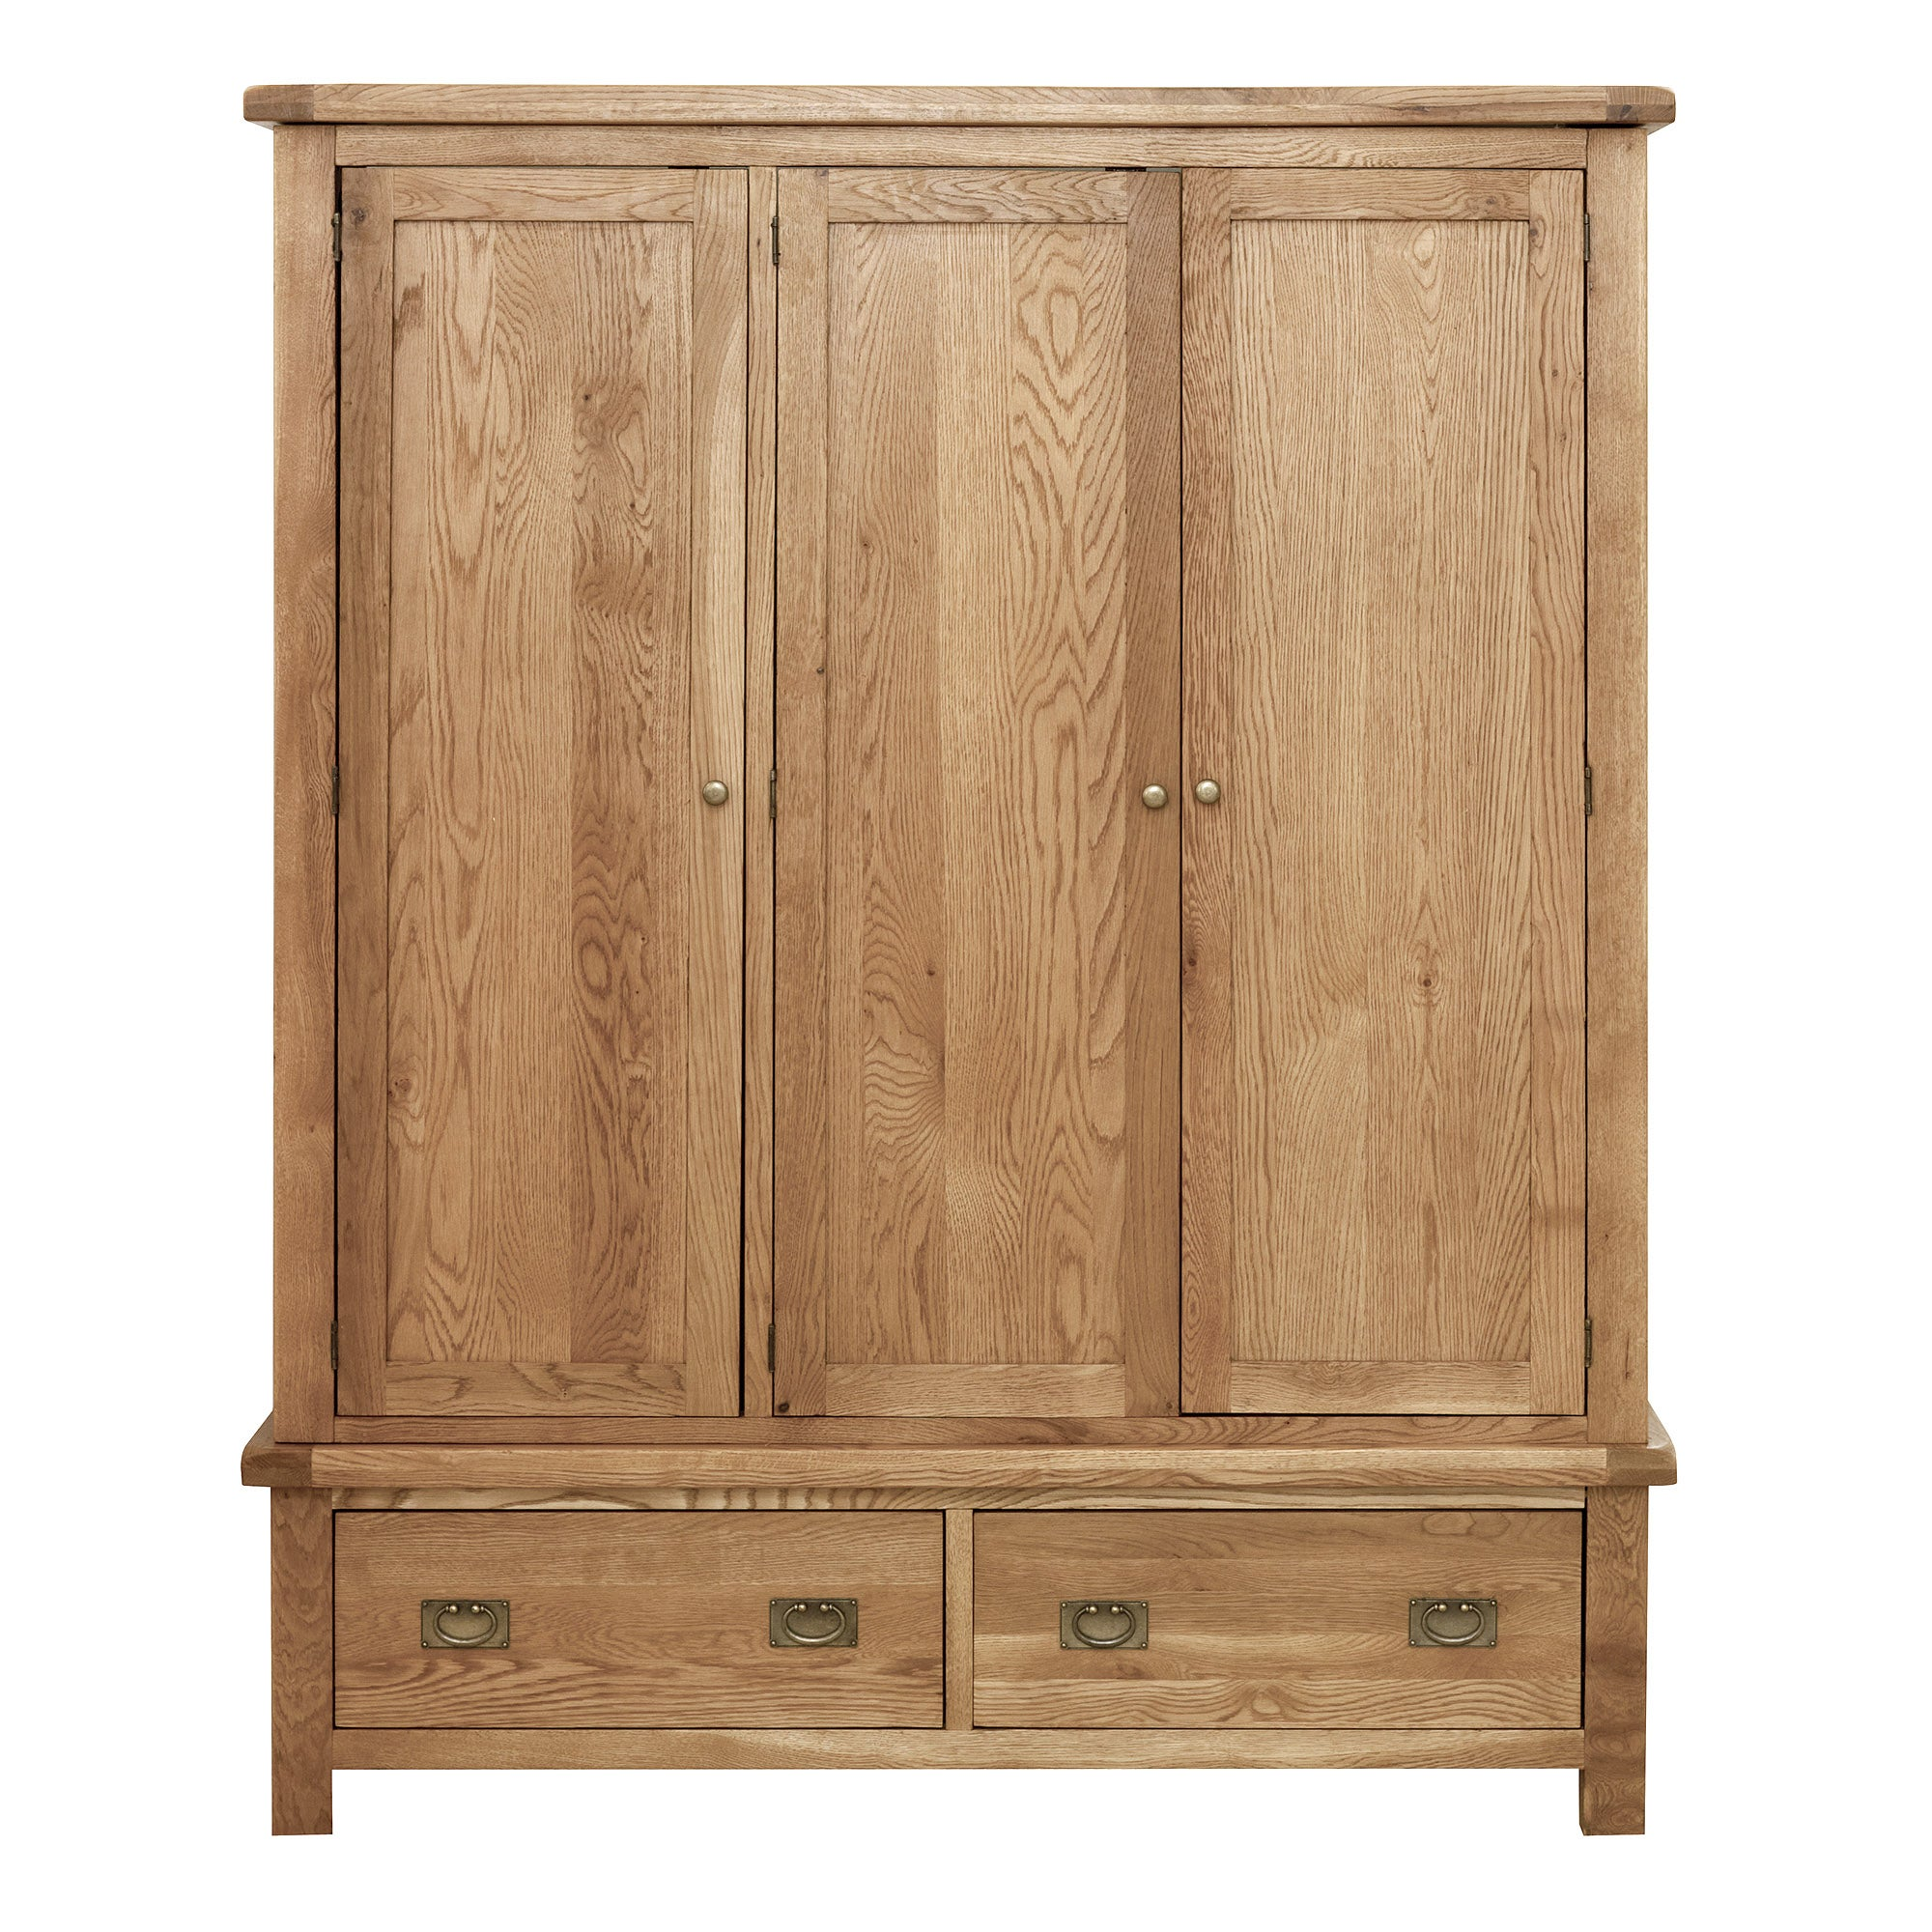 Aylesbury Oak Triple Wardrobe